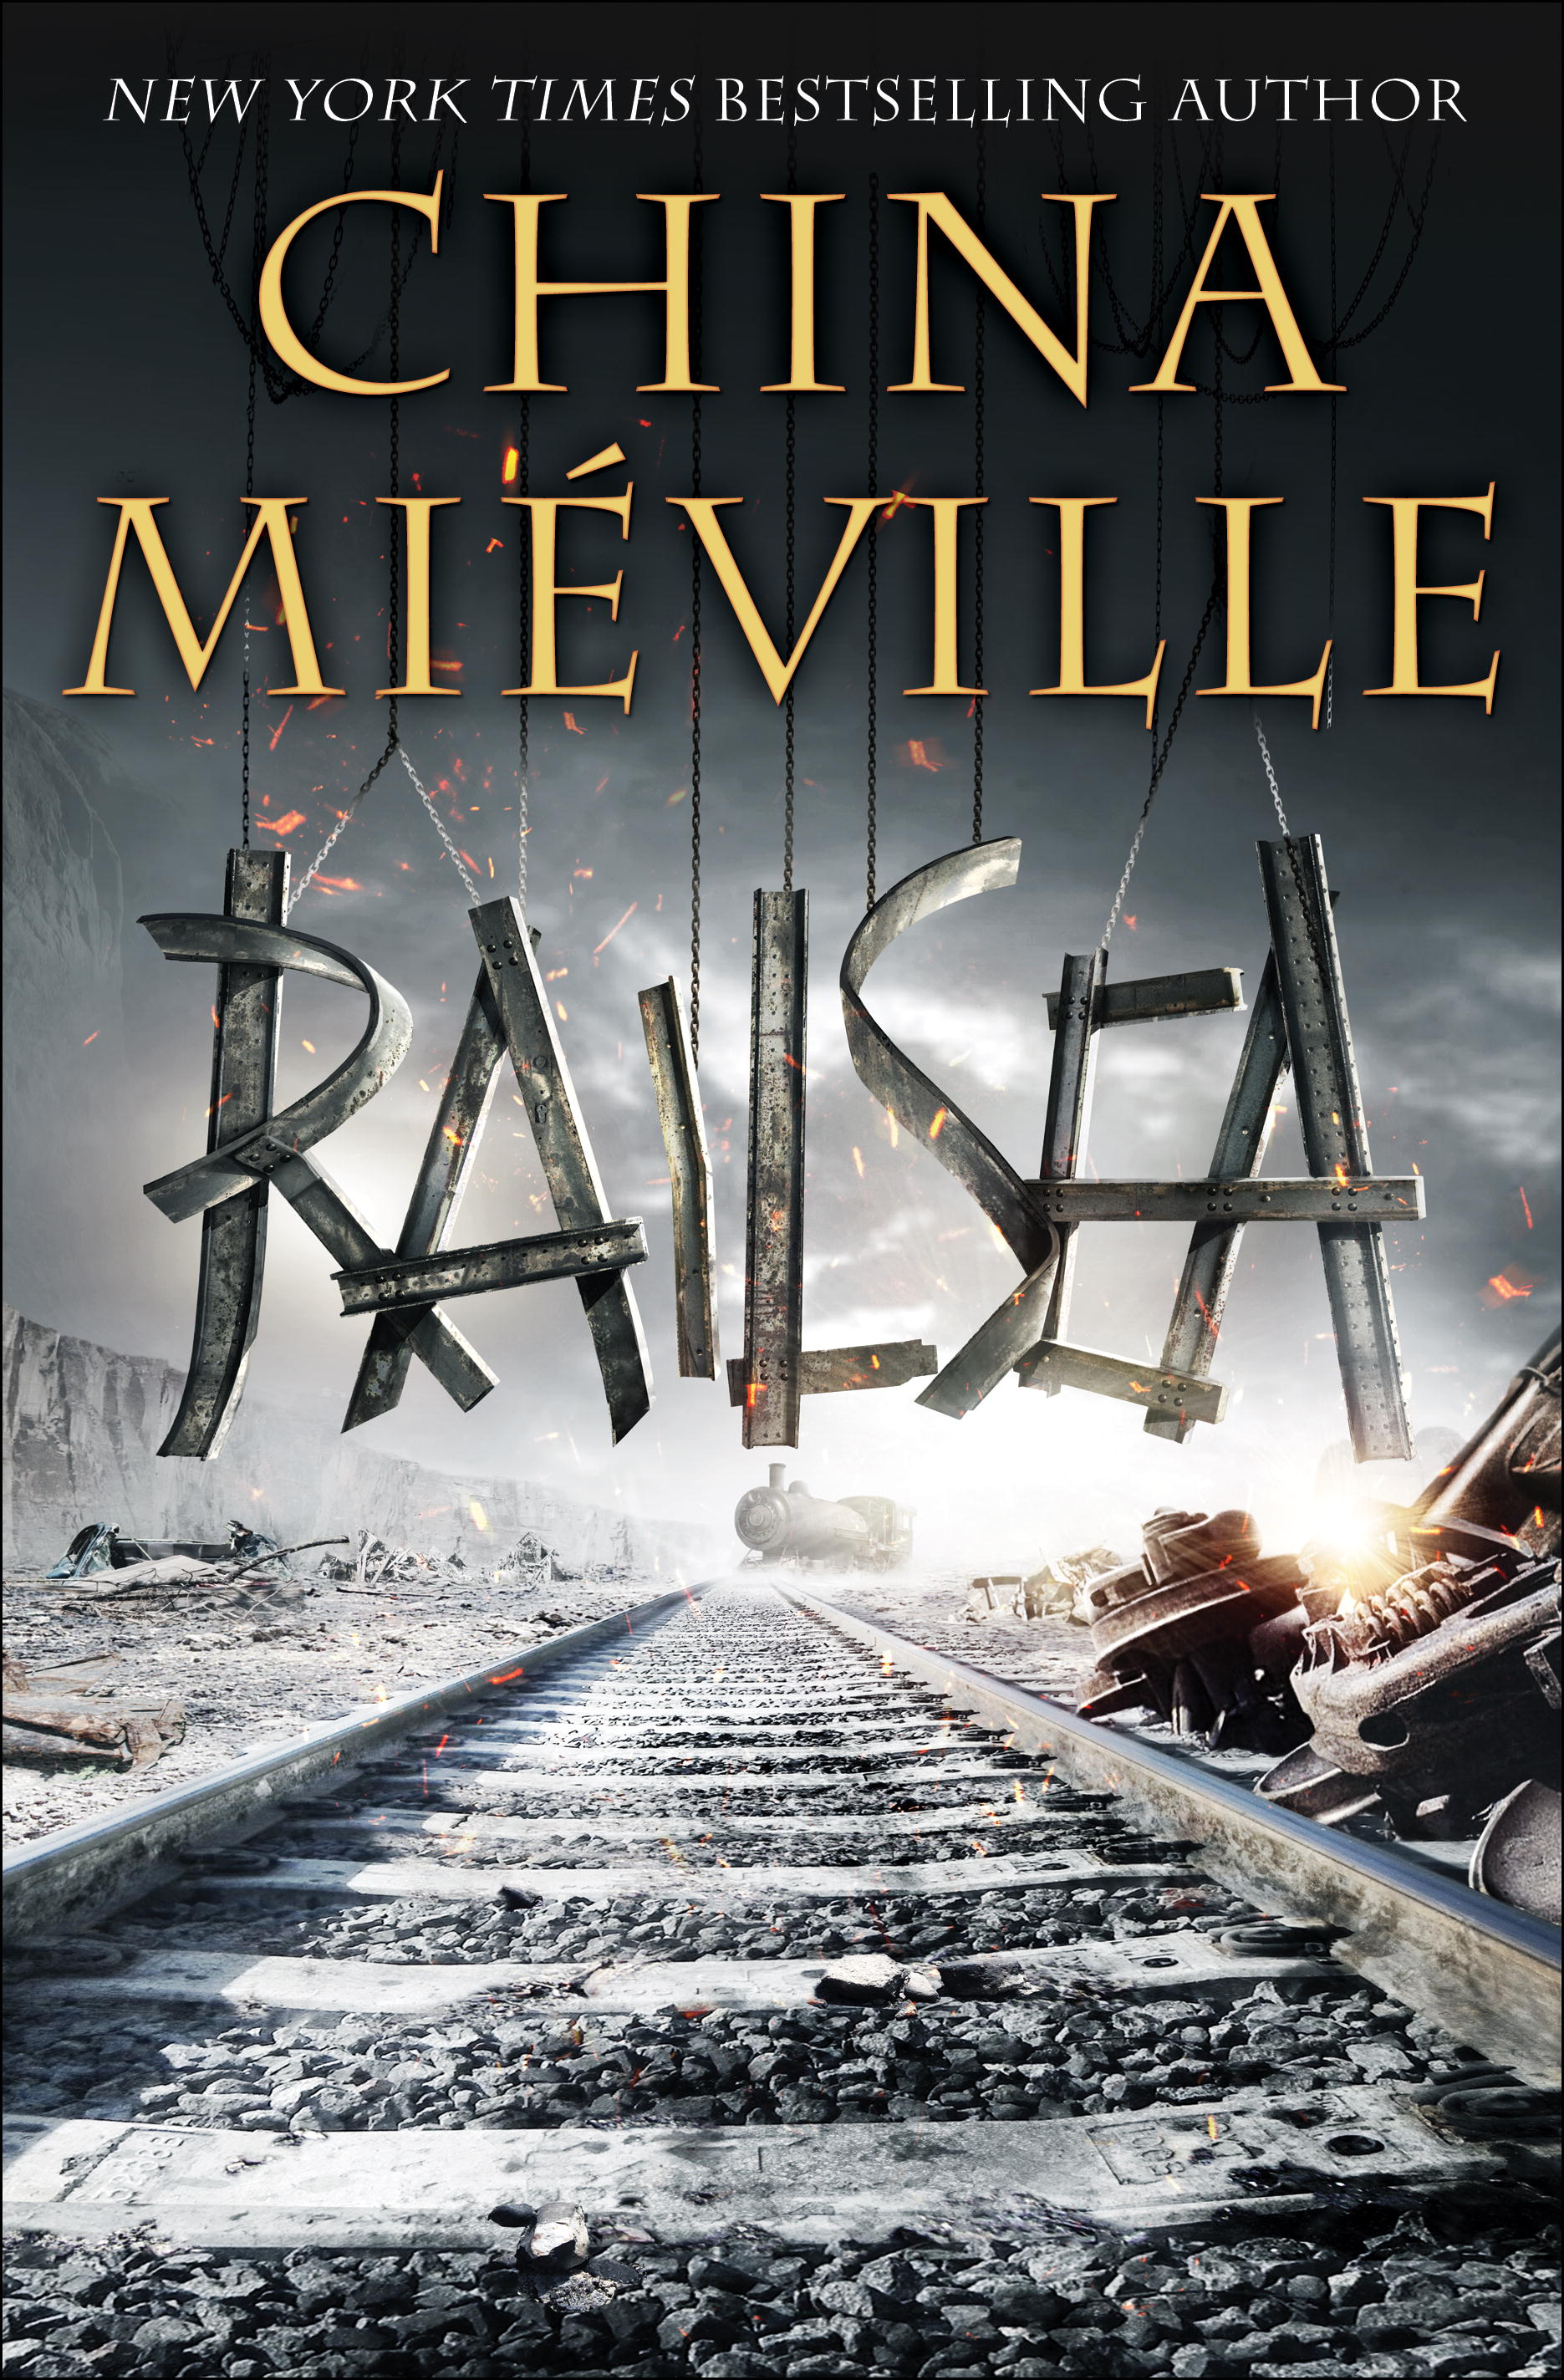 Railsea Is Primarily The Story Of Sham Yes Ap Soorap, A Young Man* Who  Works As The Doctor's Assistant On A Moletrain Called The Medes What Is A  Moletrain?